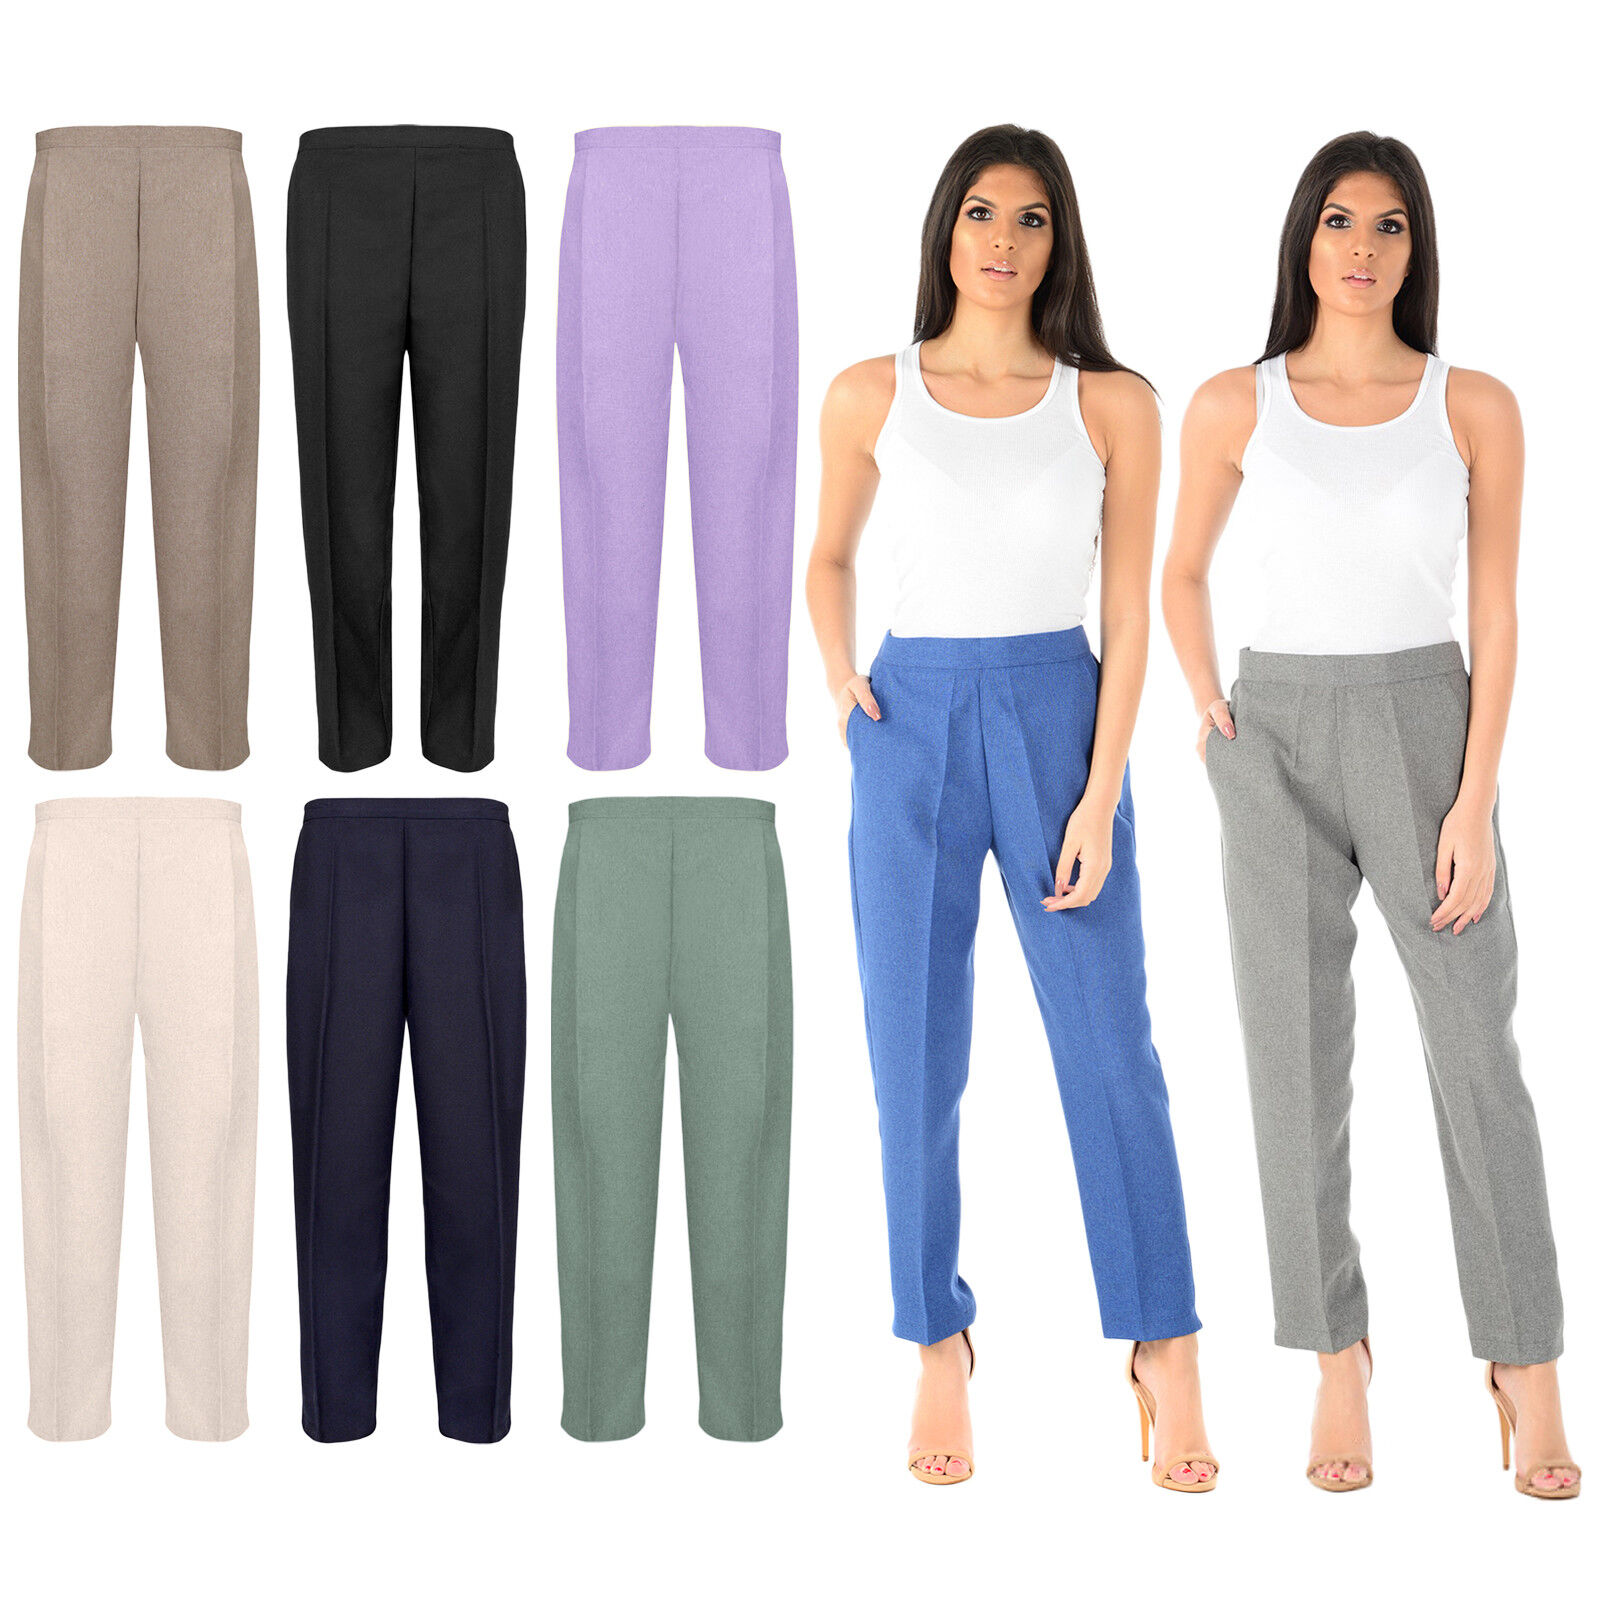 NEW LADIES WOMENS HALF ELASTICATED STRETCH WAIST OFFICE WORK TROUSERS PANTS